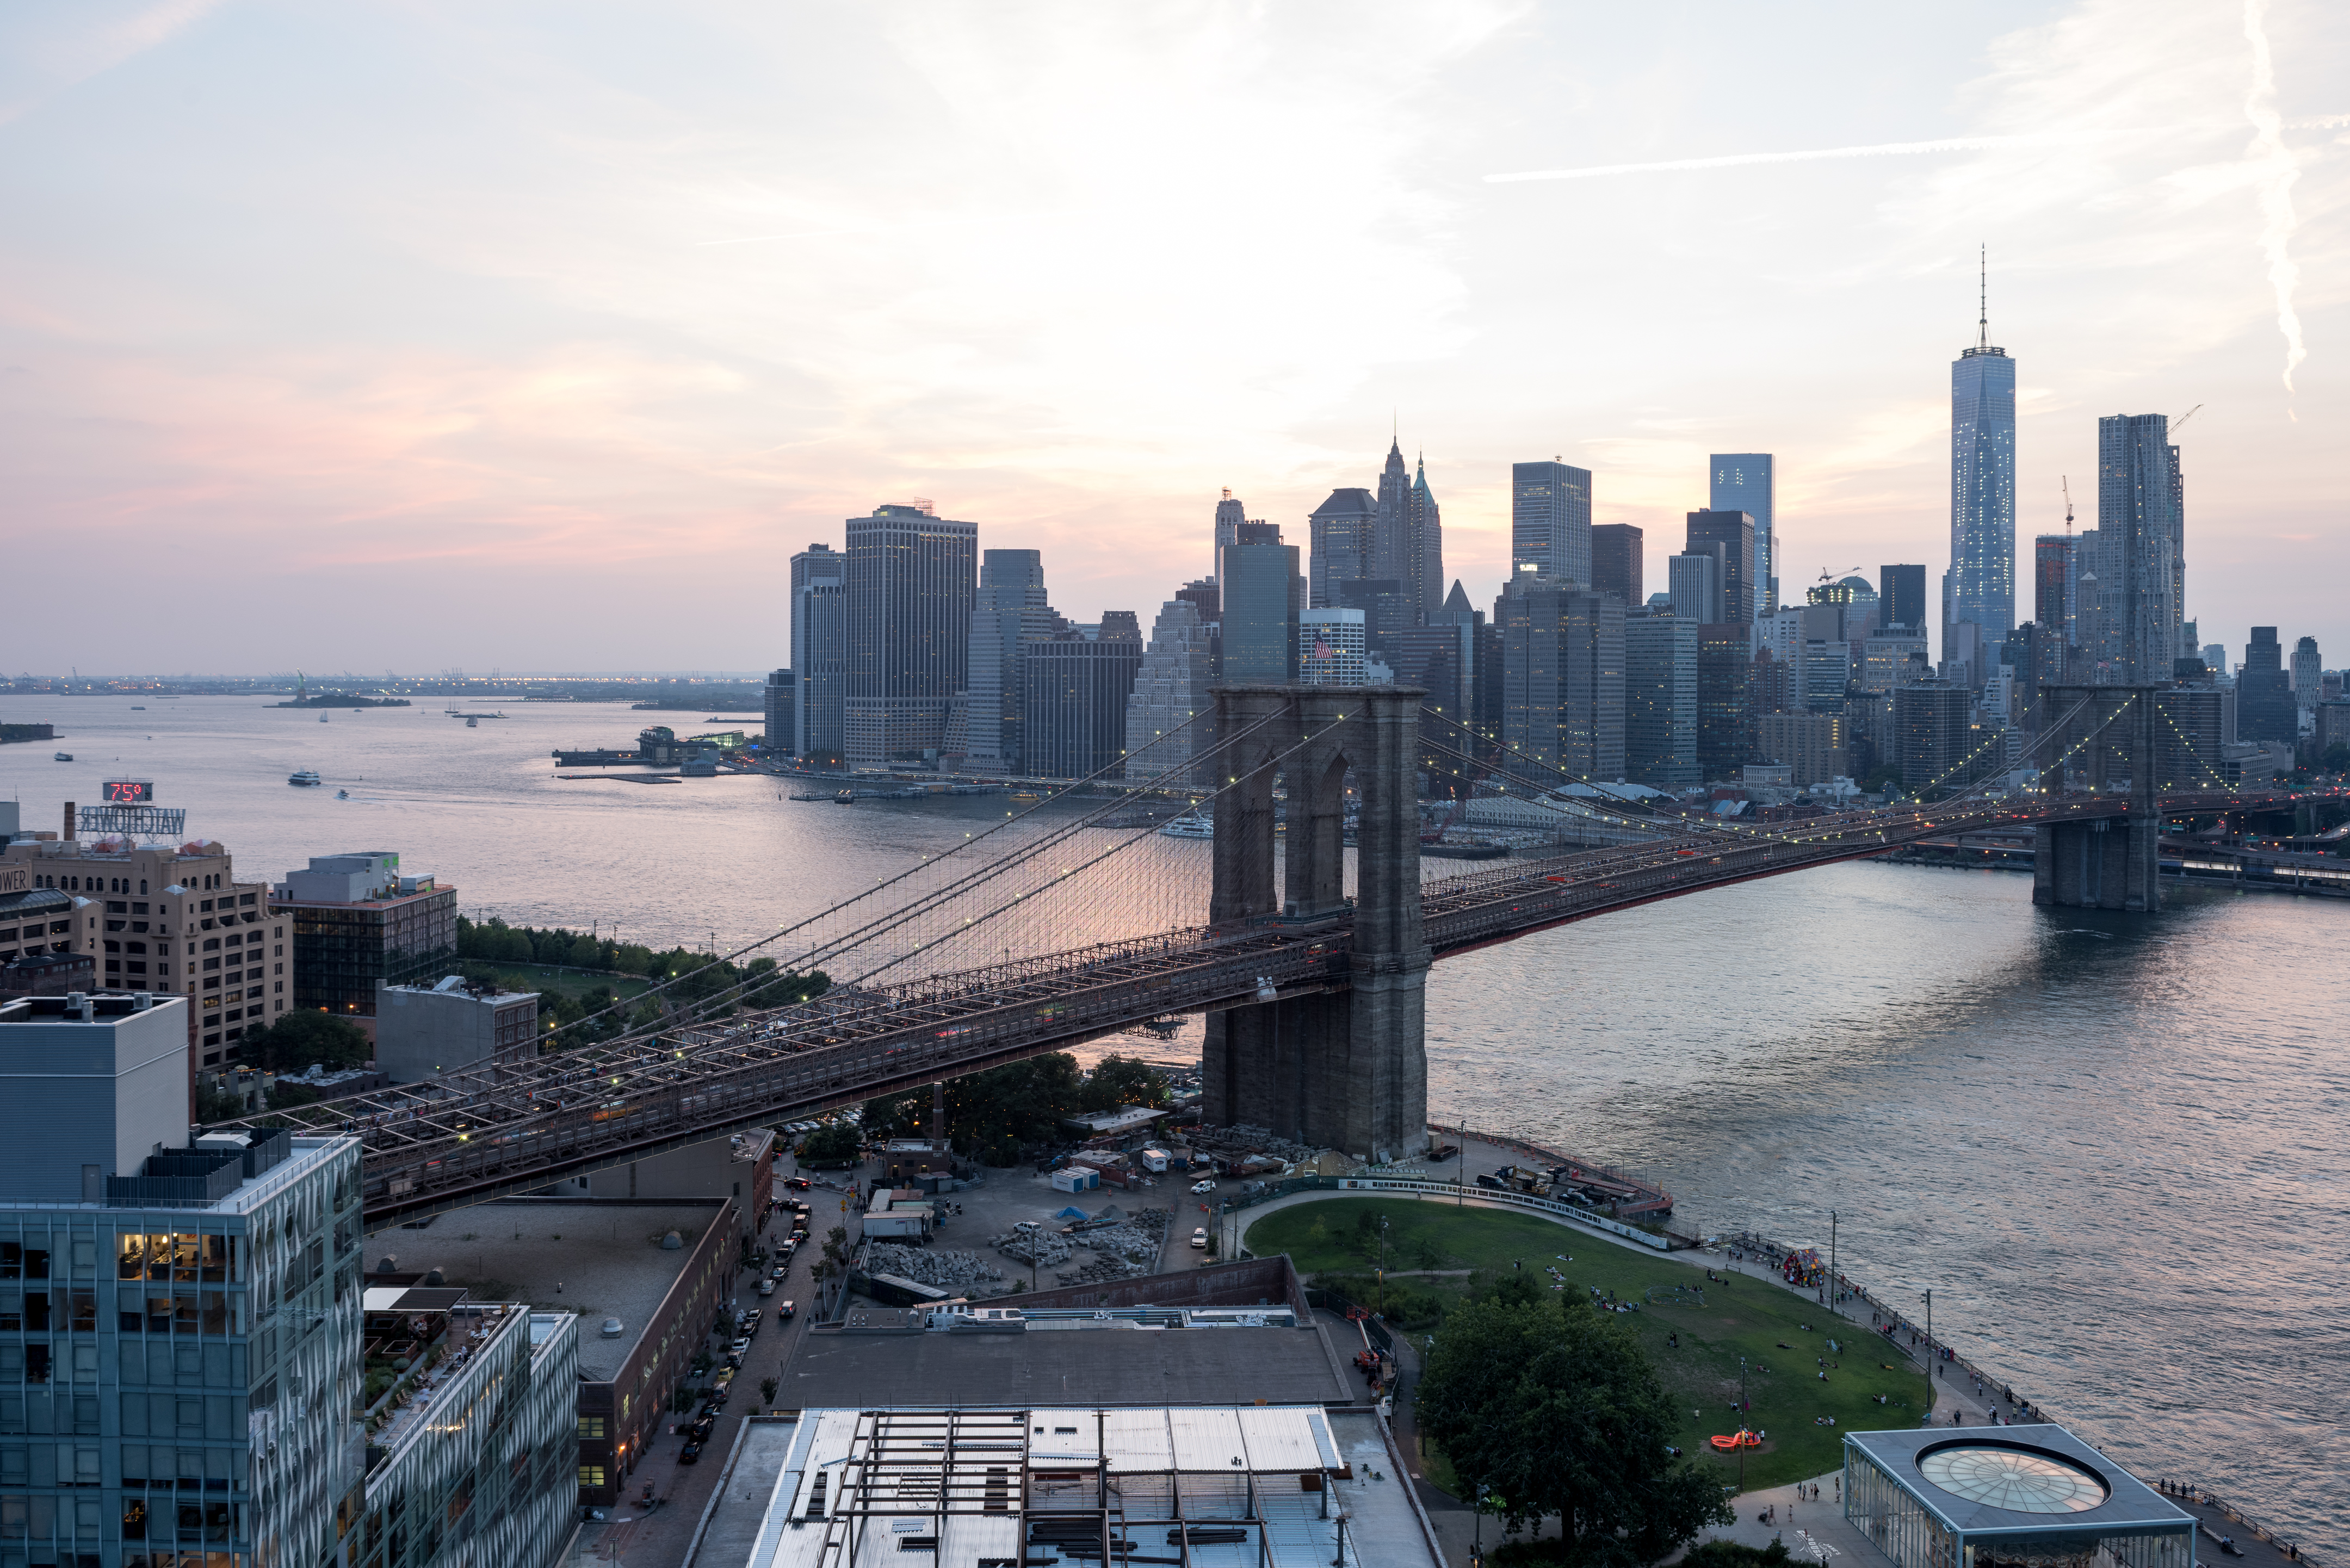 Sunset view of Brooklyn Bridge and New York City